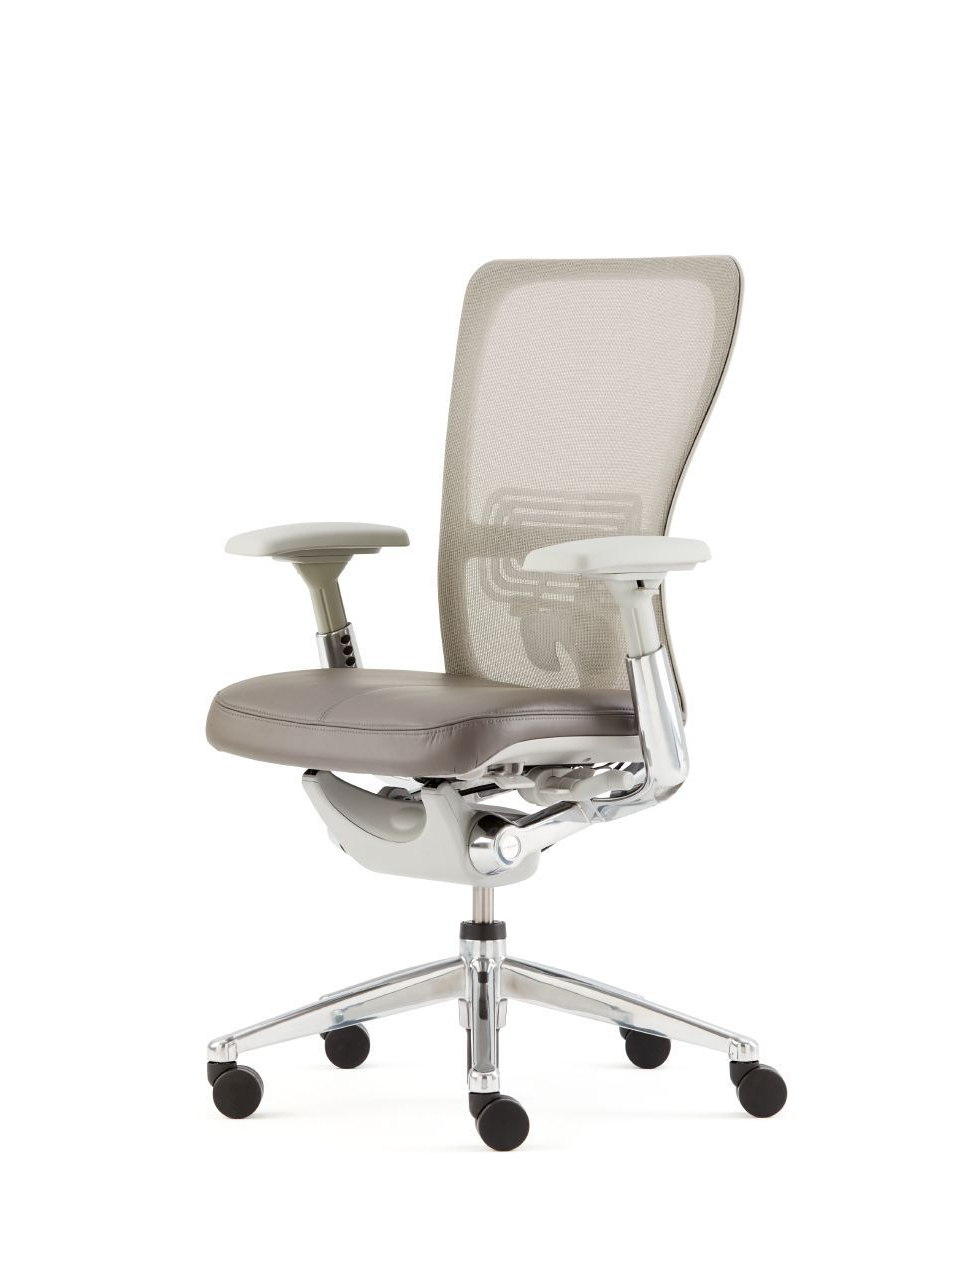 Ergonomic Desk Chairs (View 13 of 20)